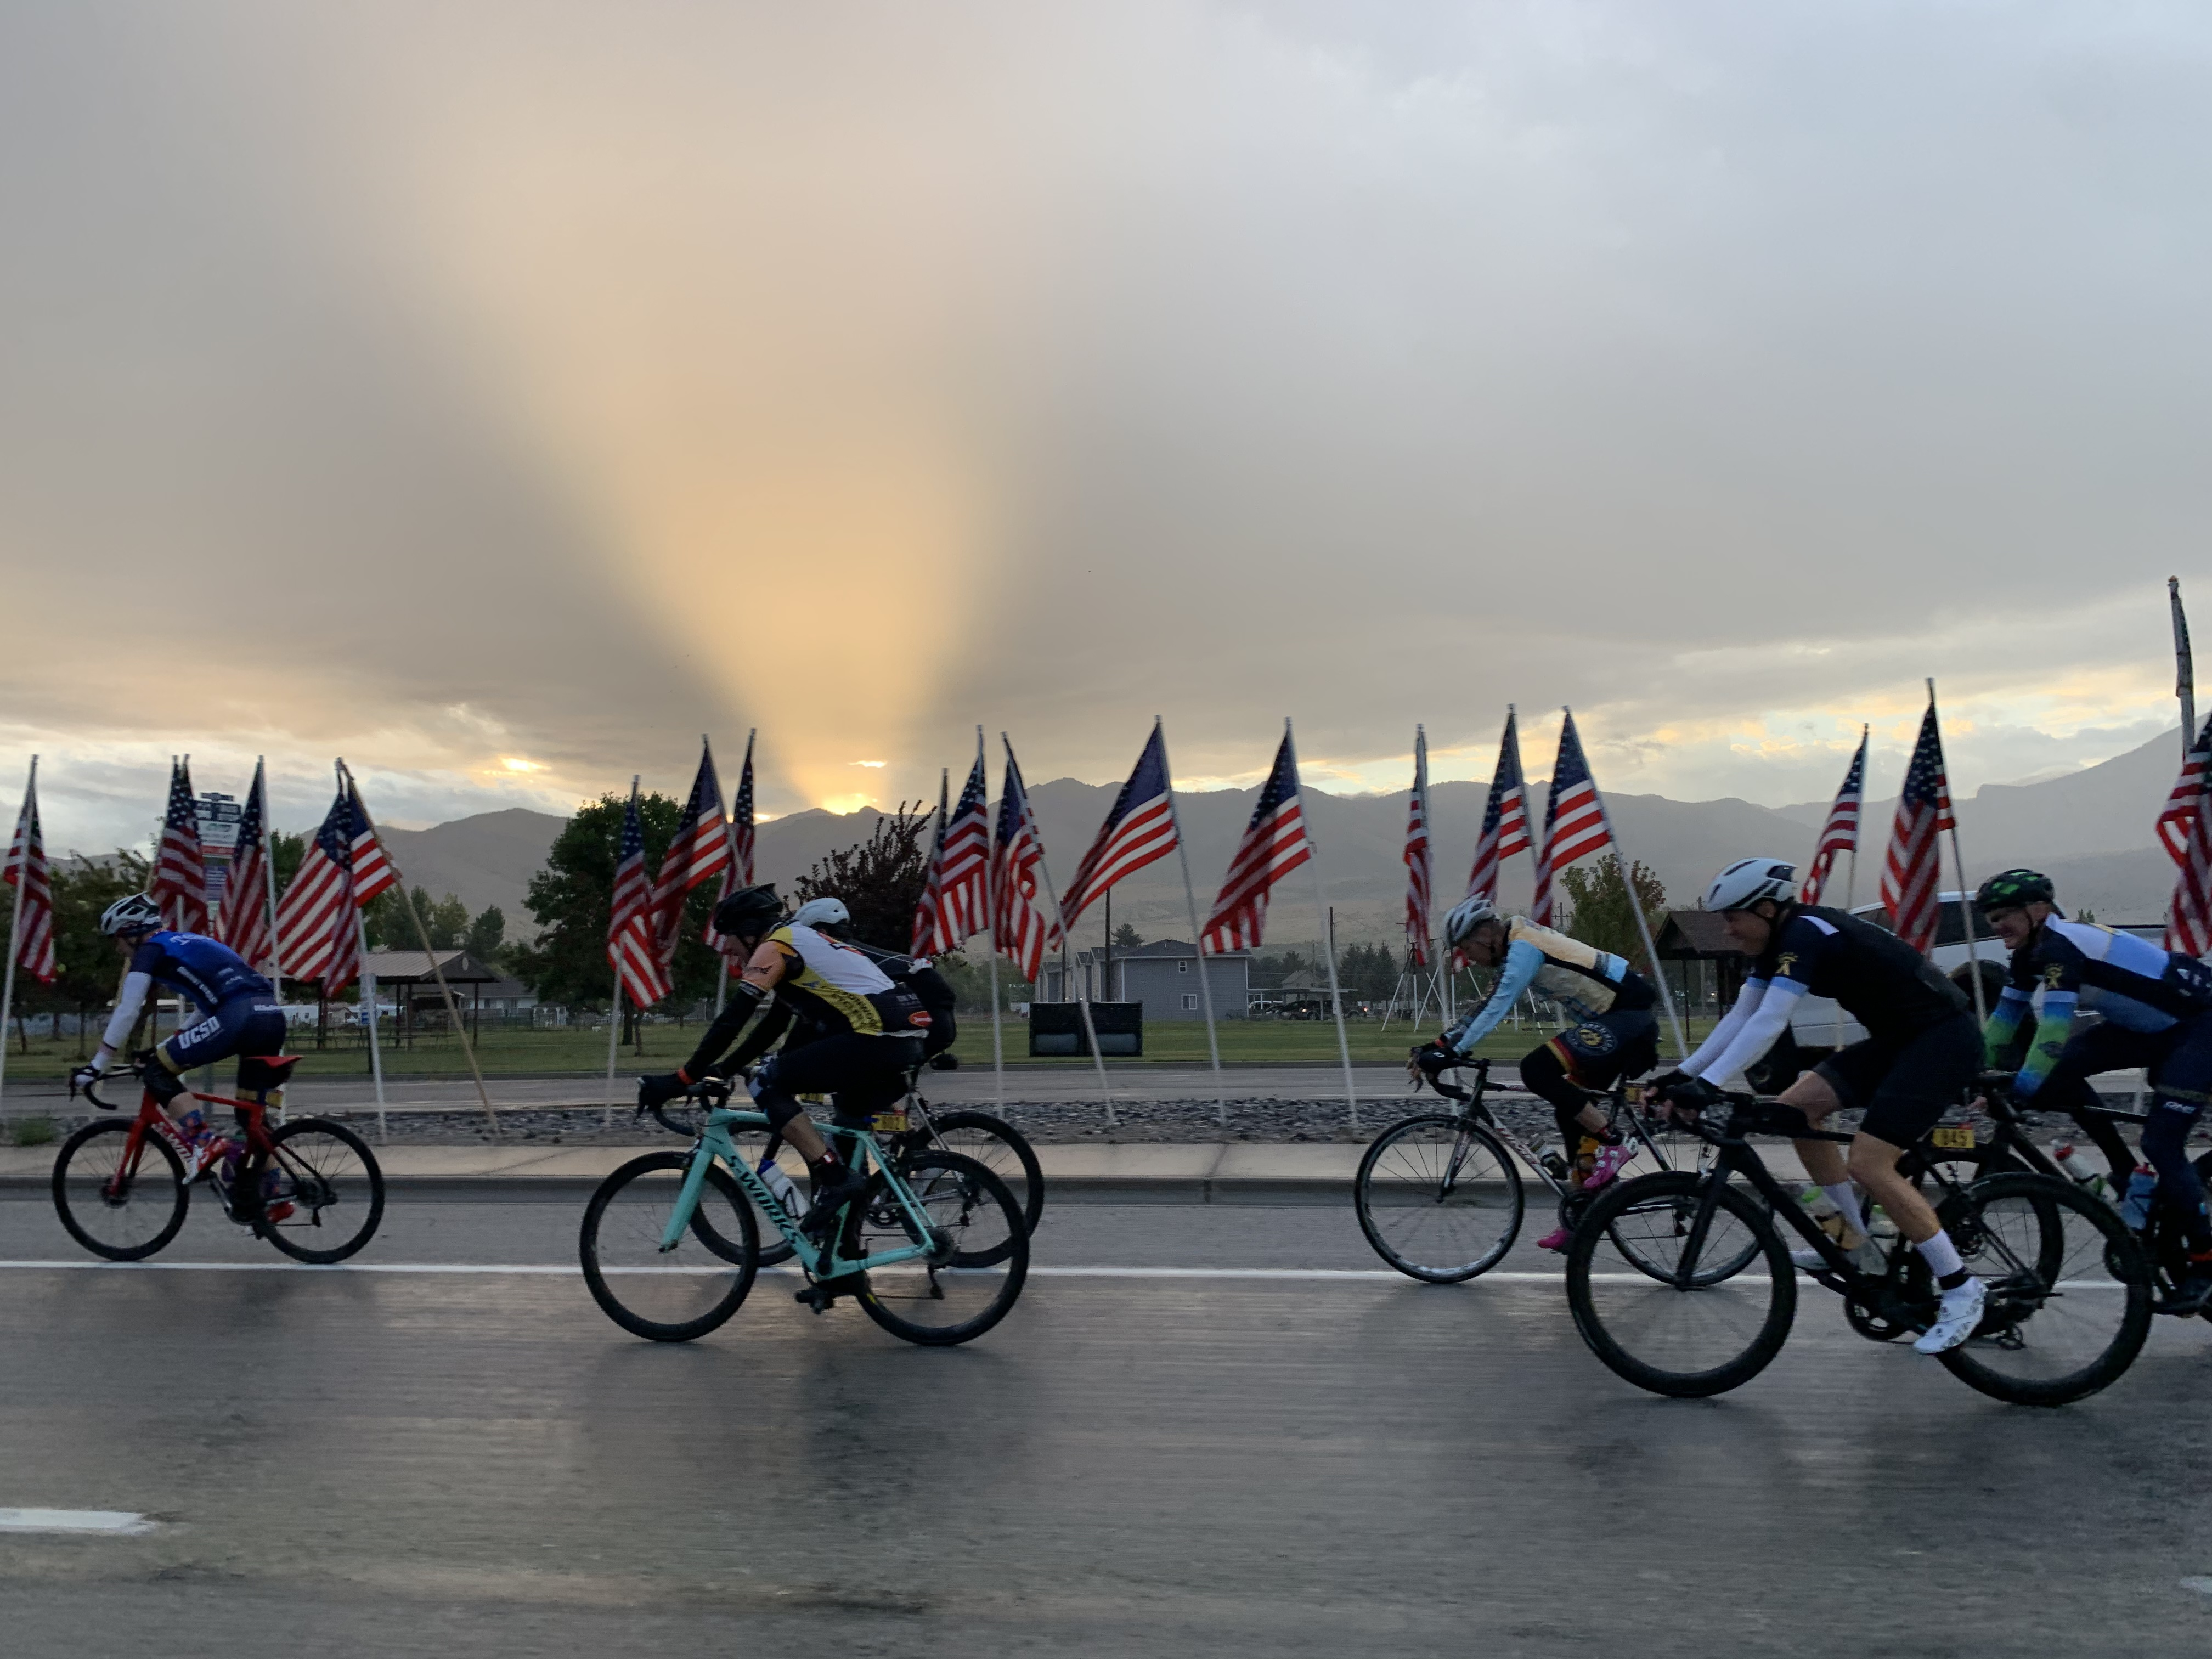 Cyclists complete in the 2021 LoToJa Classic on wet roads as the sun rises near Preston, Idaho, on Saturday, Sept. 11, 2021.